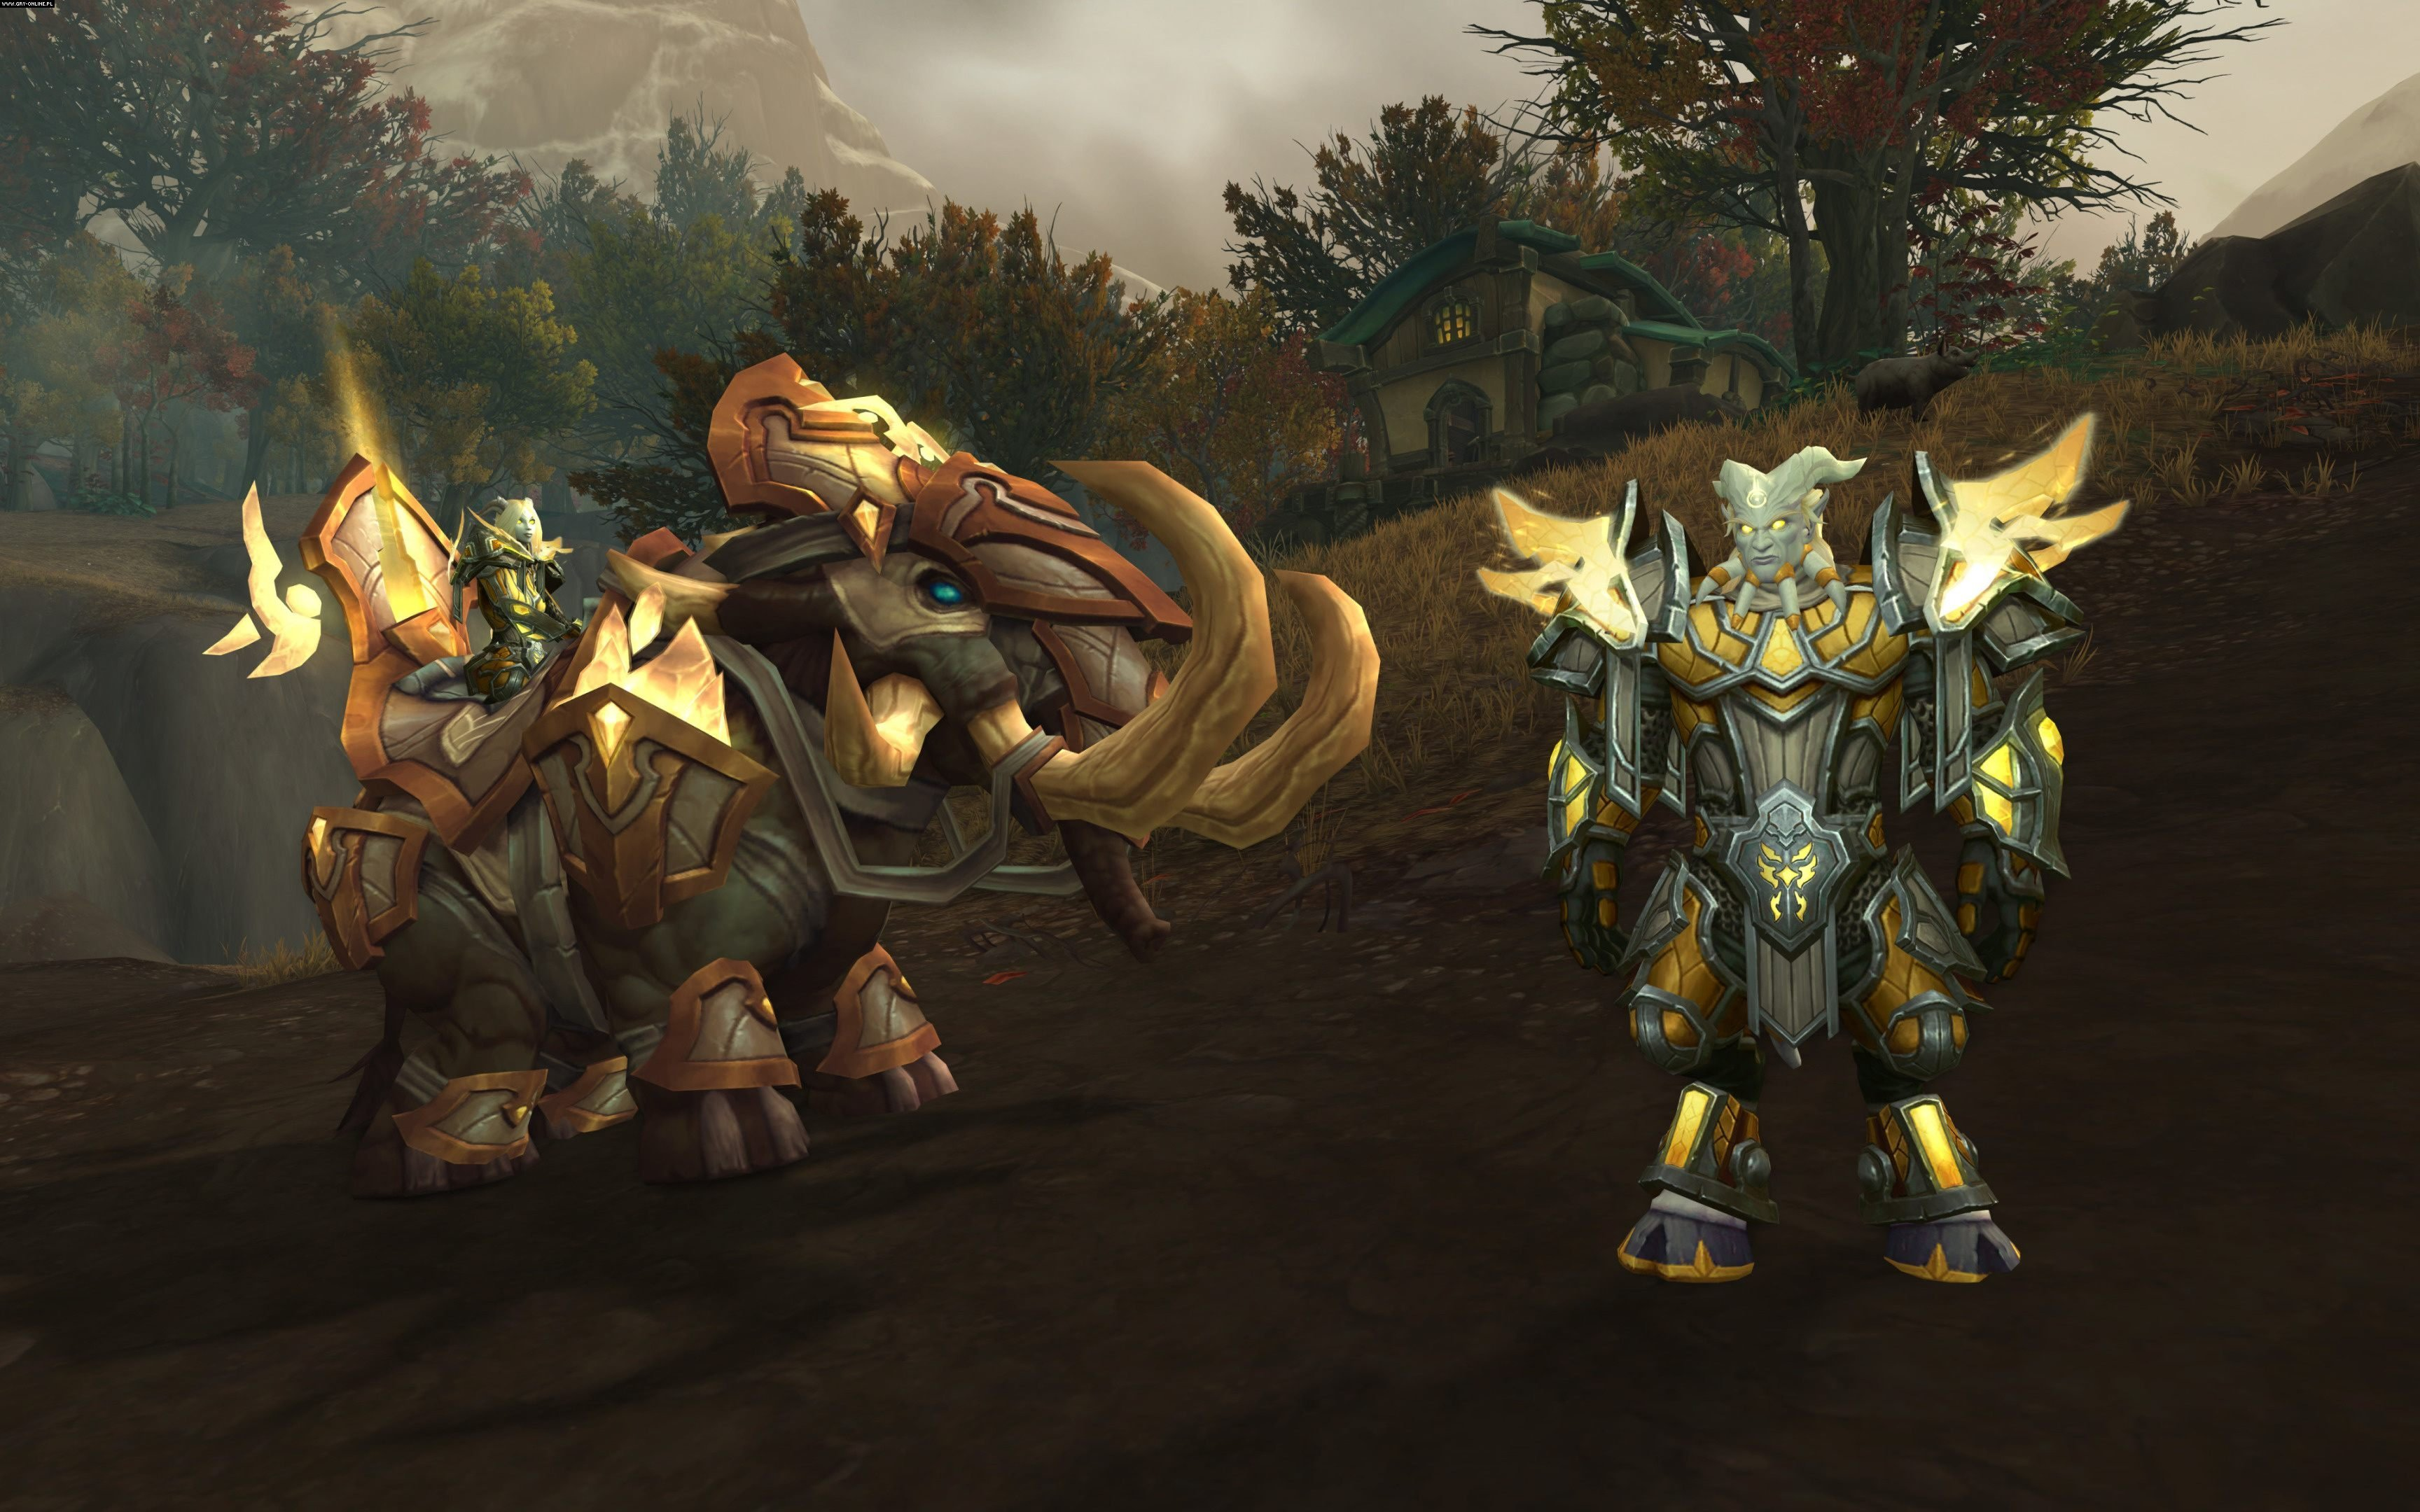 world of warcraft leveling guide boost